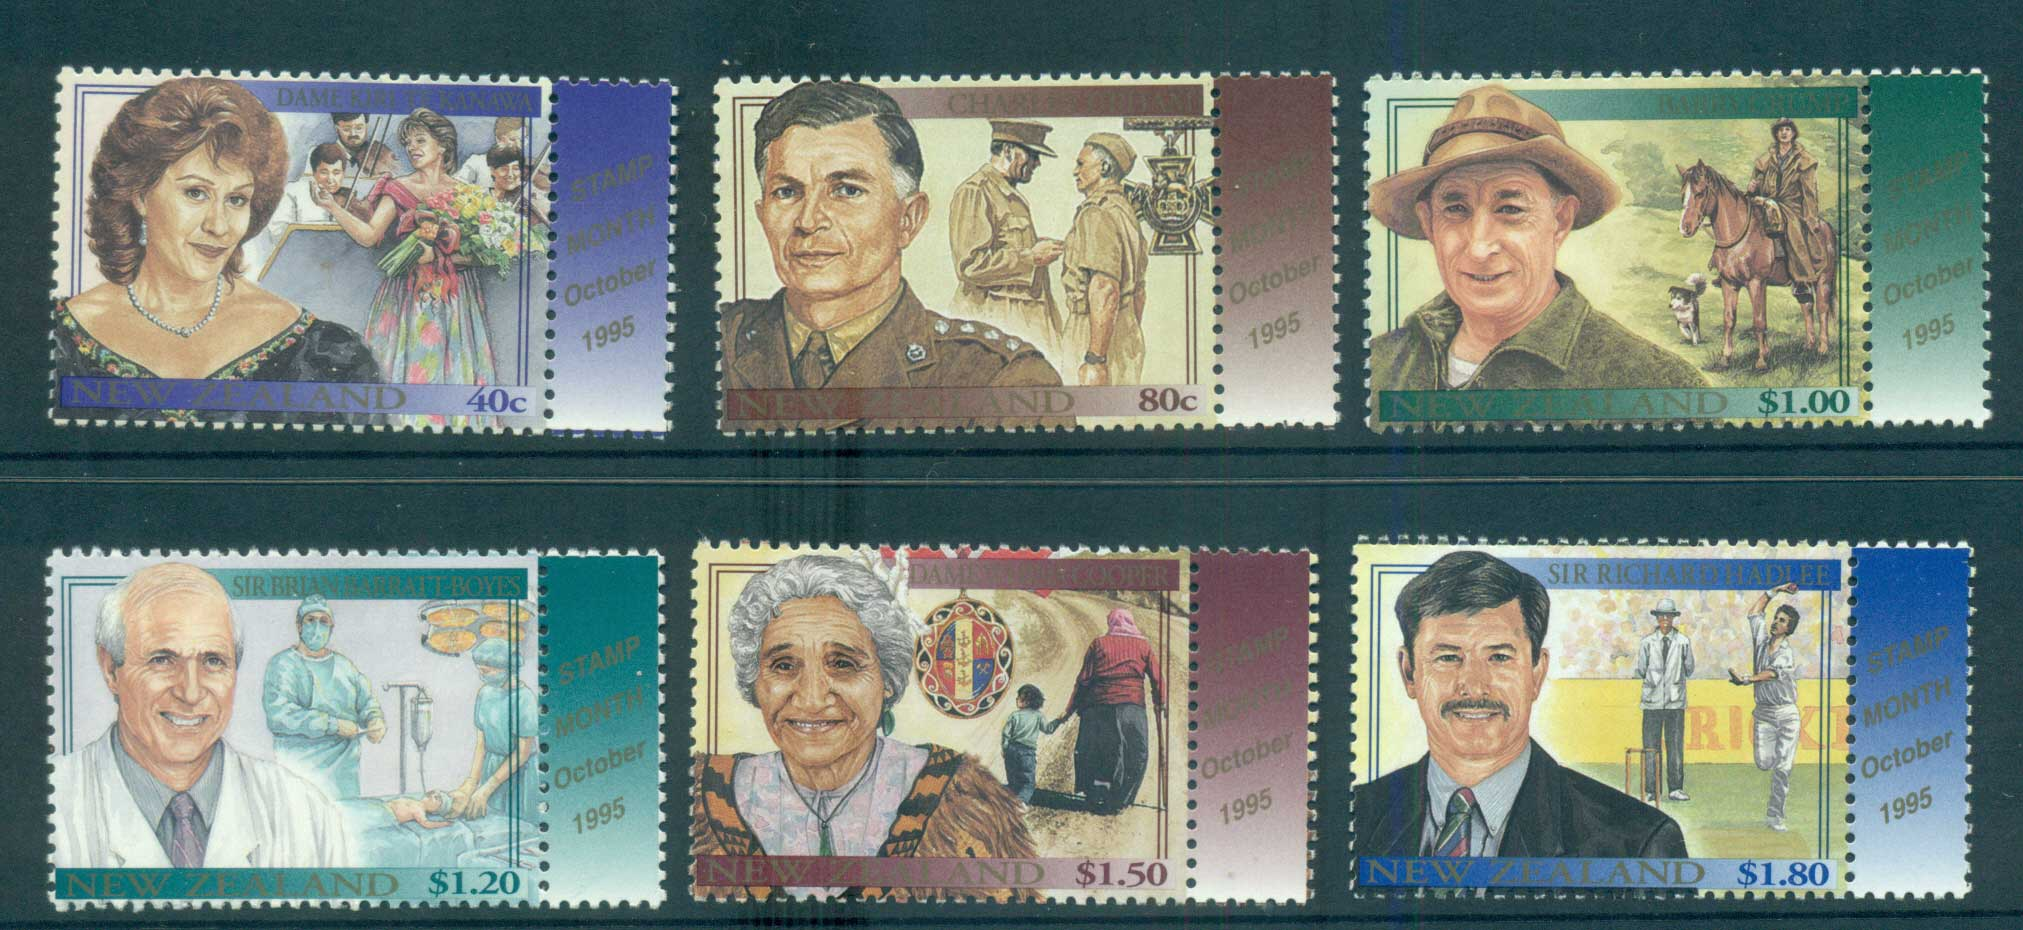 New Zealand 1995 Famous Living New Zealanders MUH lot53206